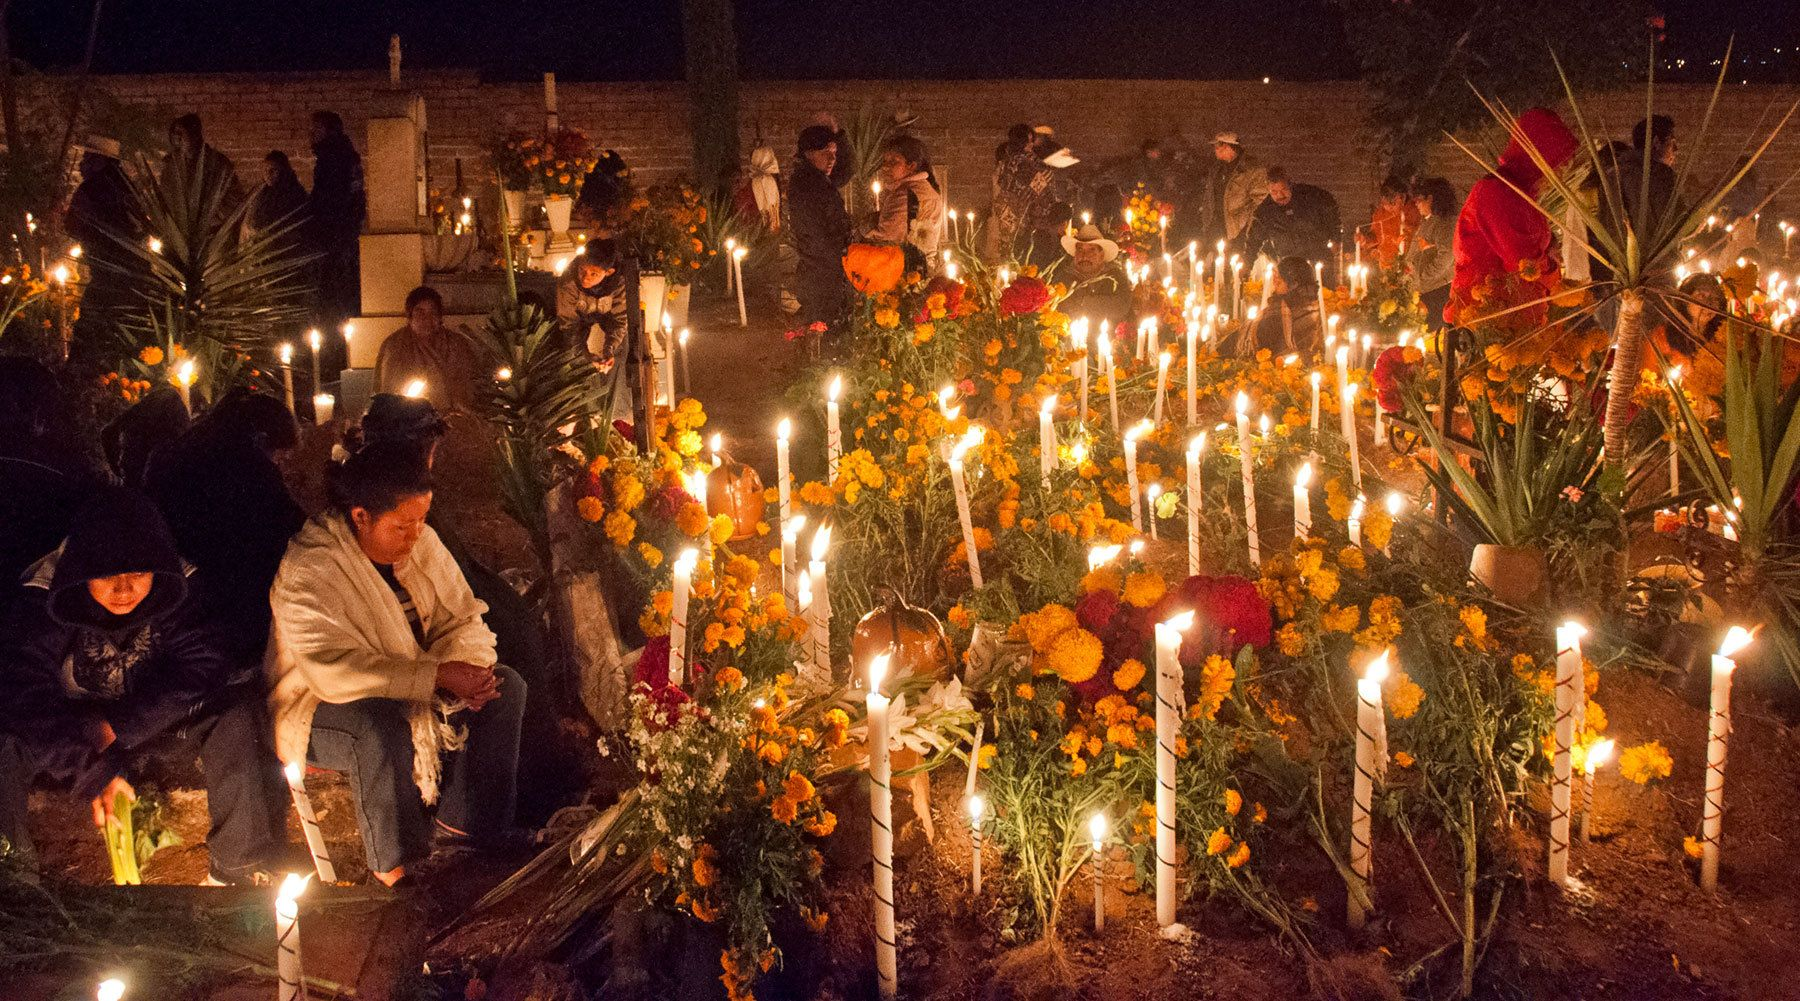 Cemetery, Day of the Dead, Oaxaca, Mexico